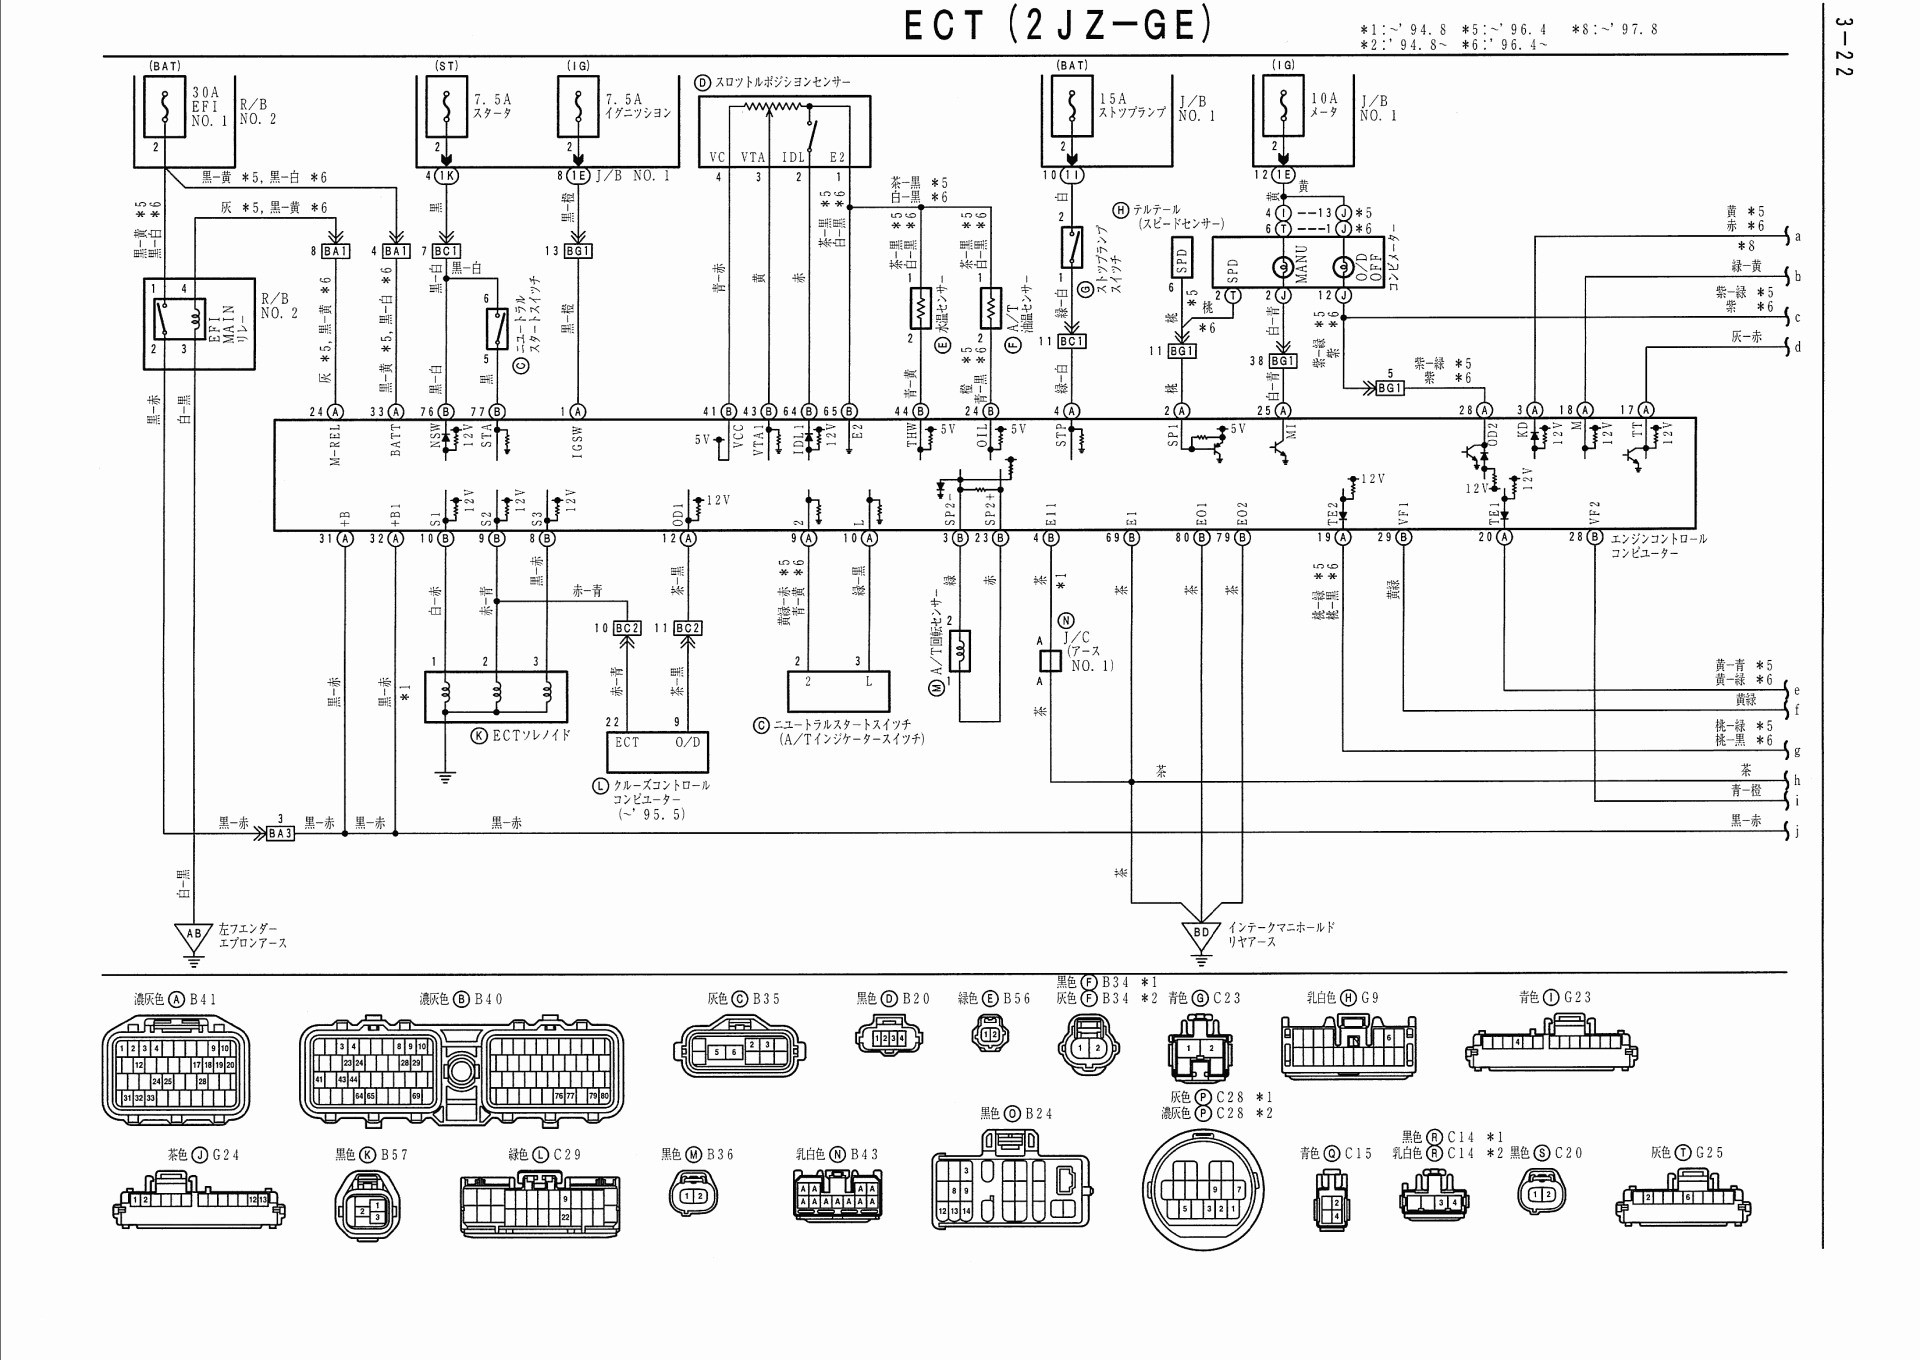 Mitsubishi Colt Wiring Diagram And Schematics 4g92 Truck Bmw E53 Diagrams Instructions Of